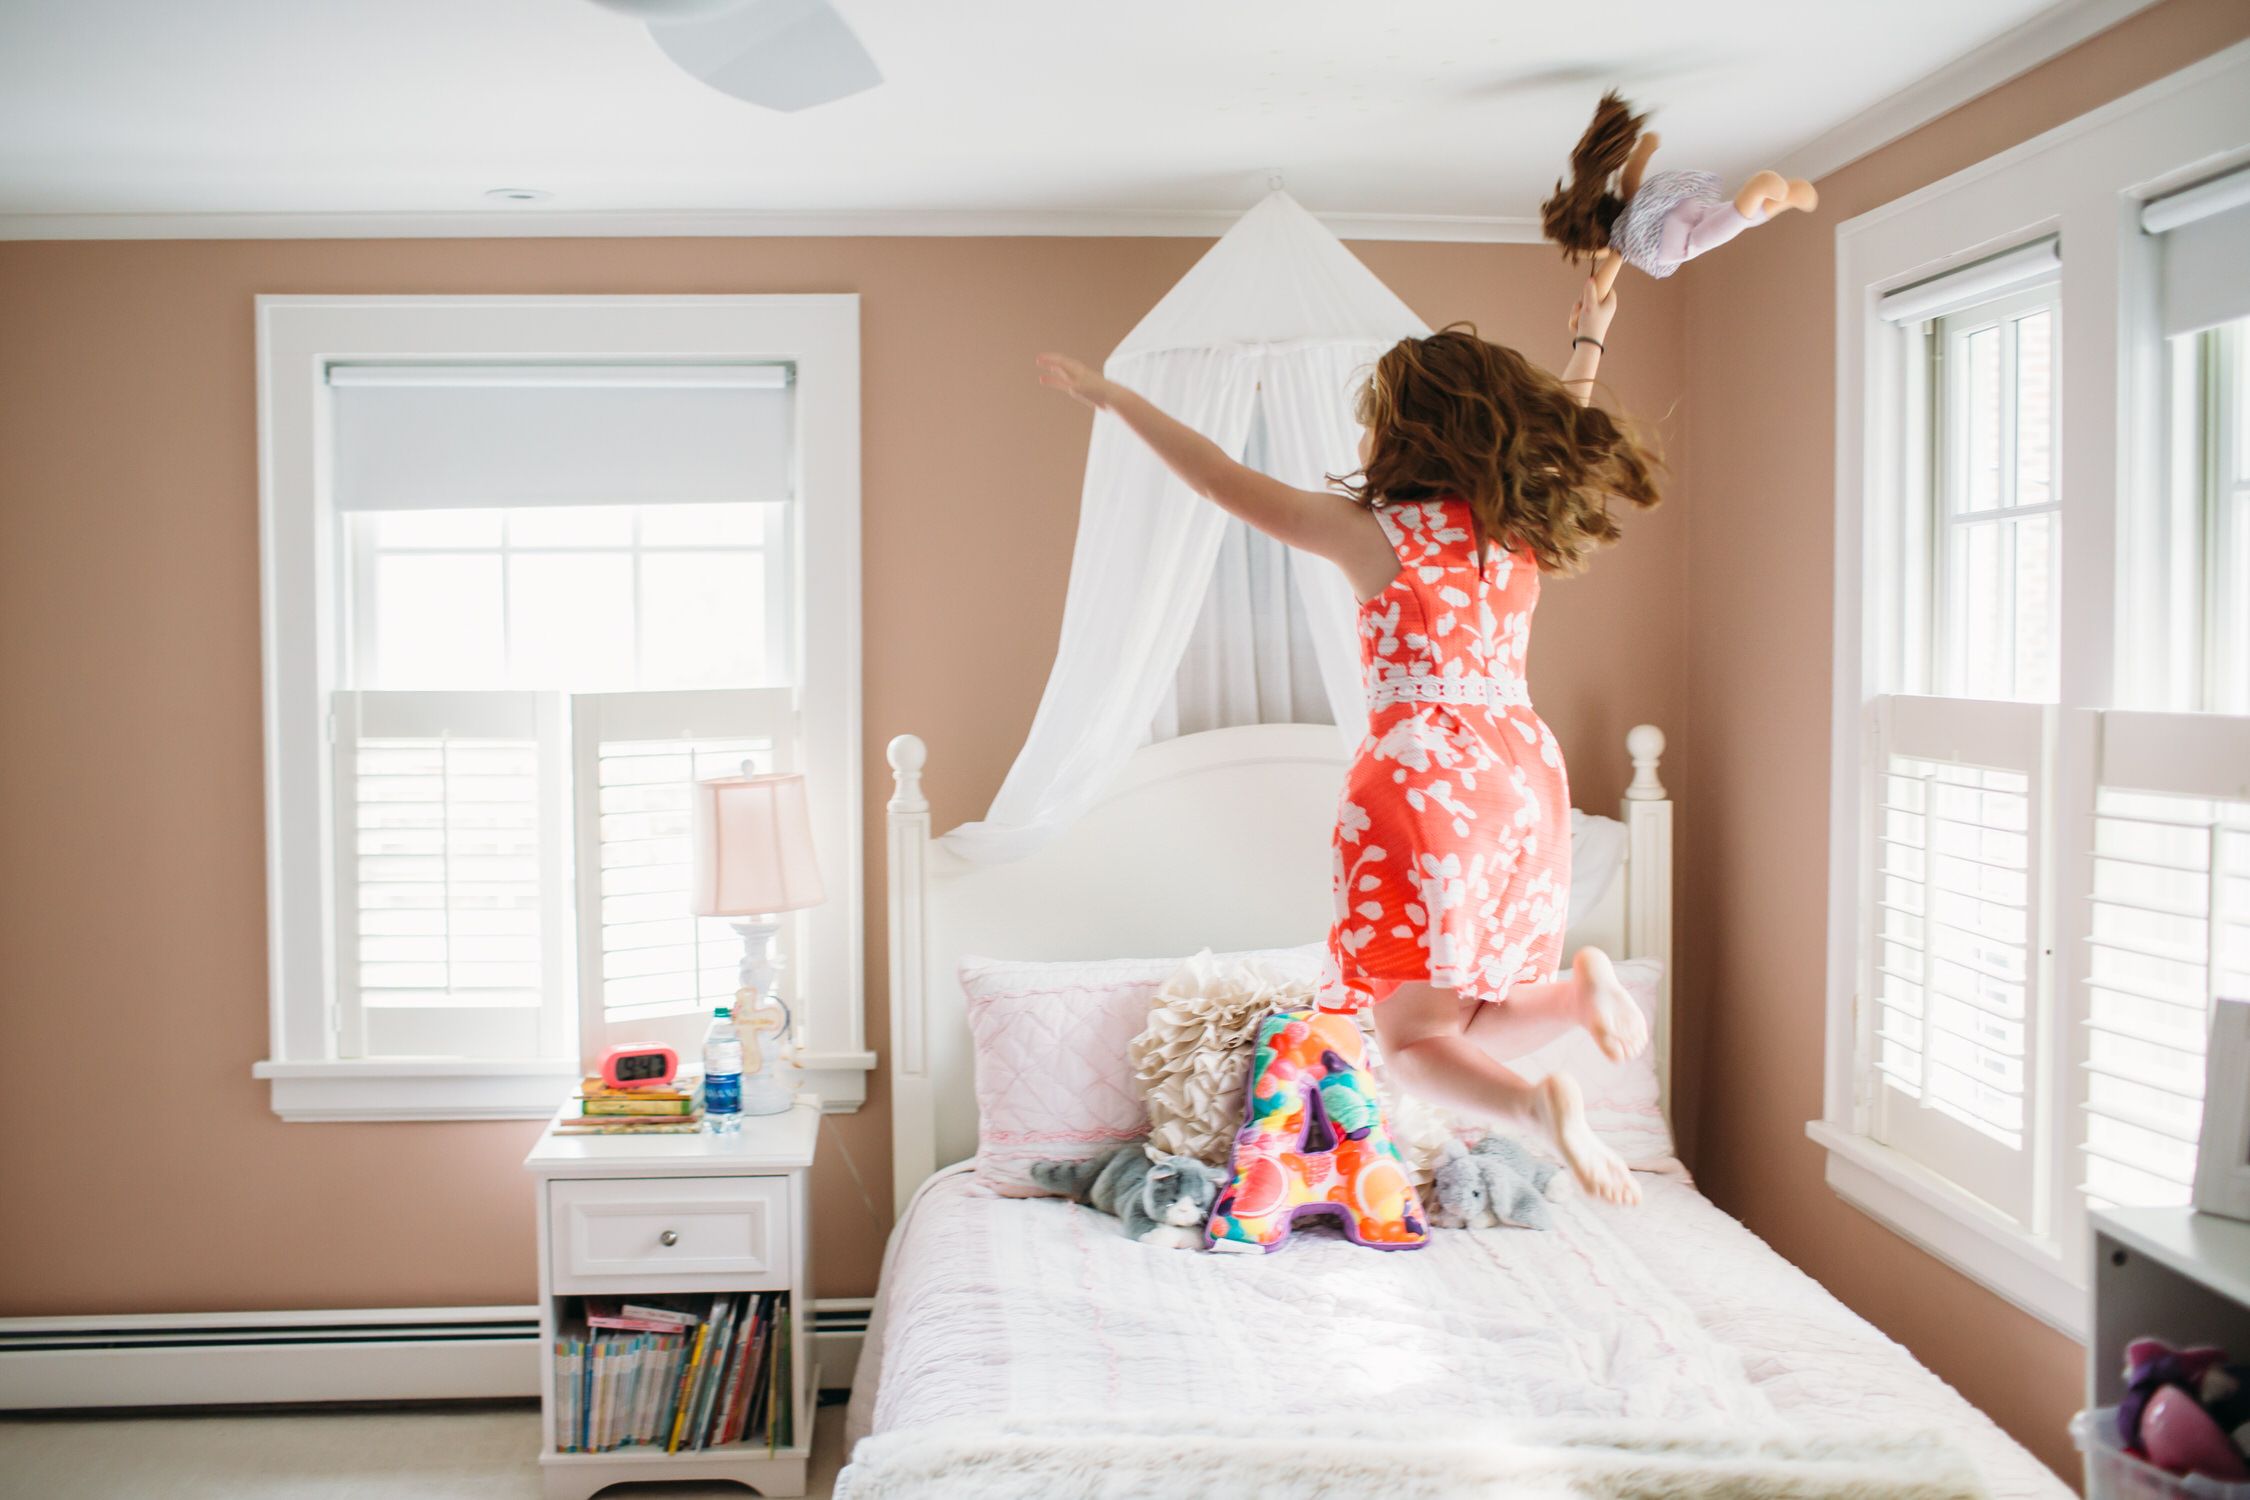 Kids jumping on the bed, Lifestyle family photos at home, Darien Connecticut